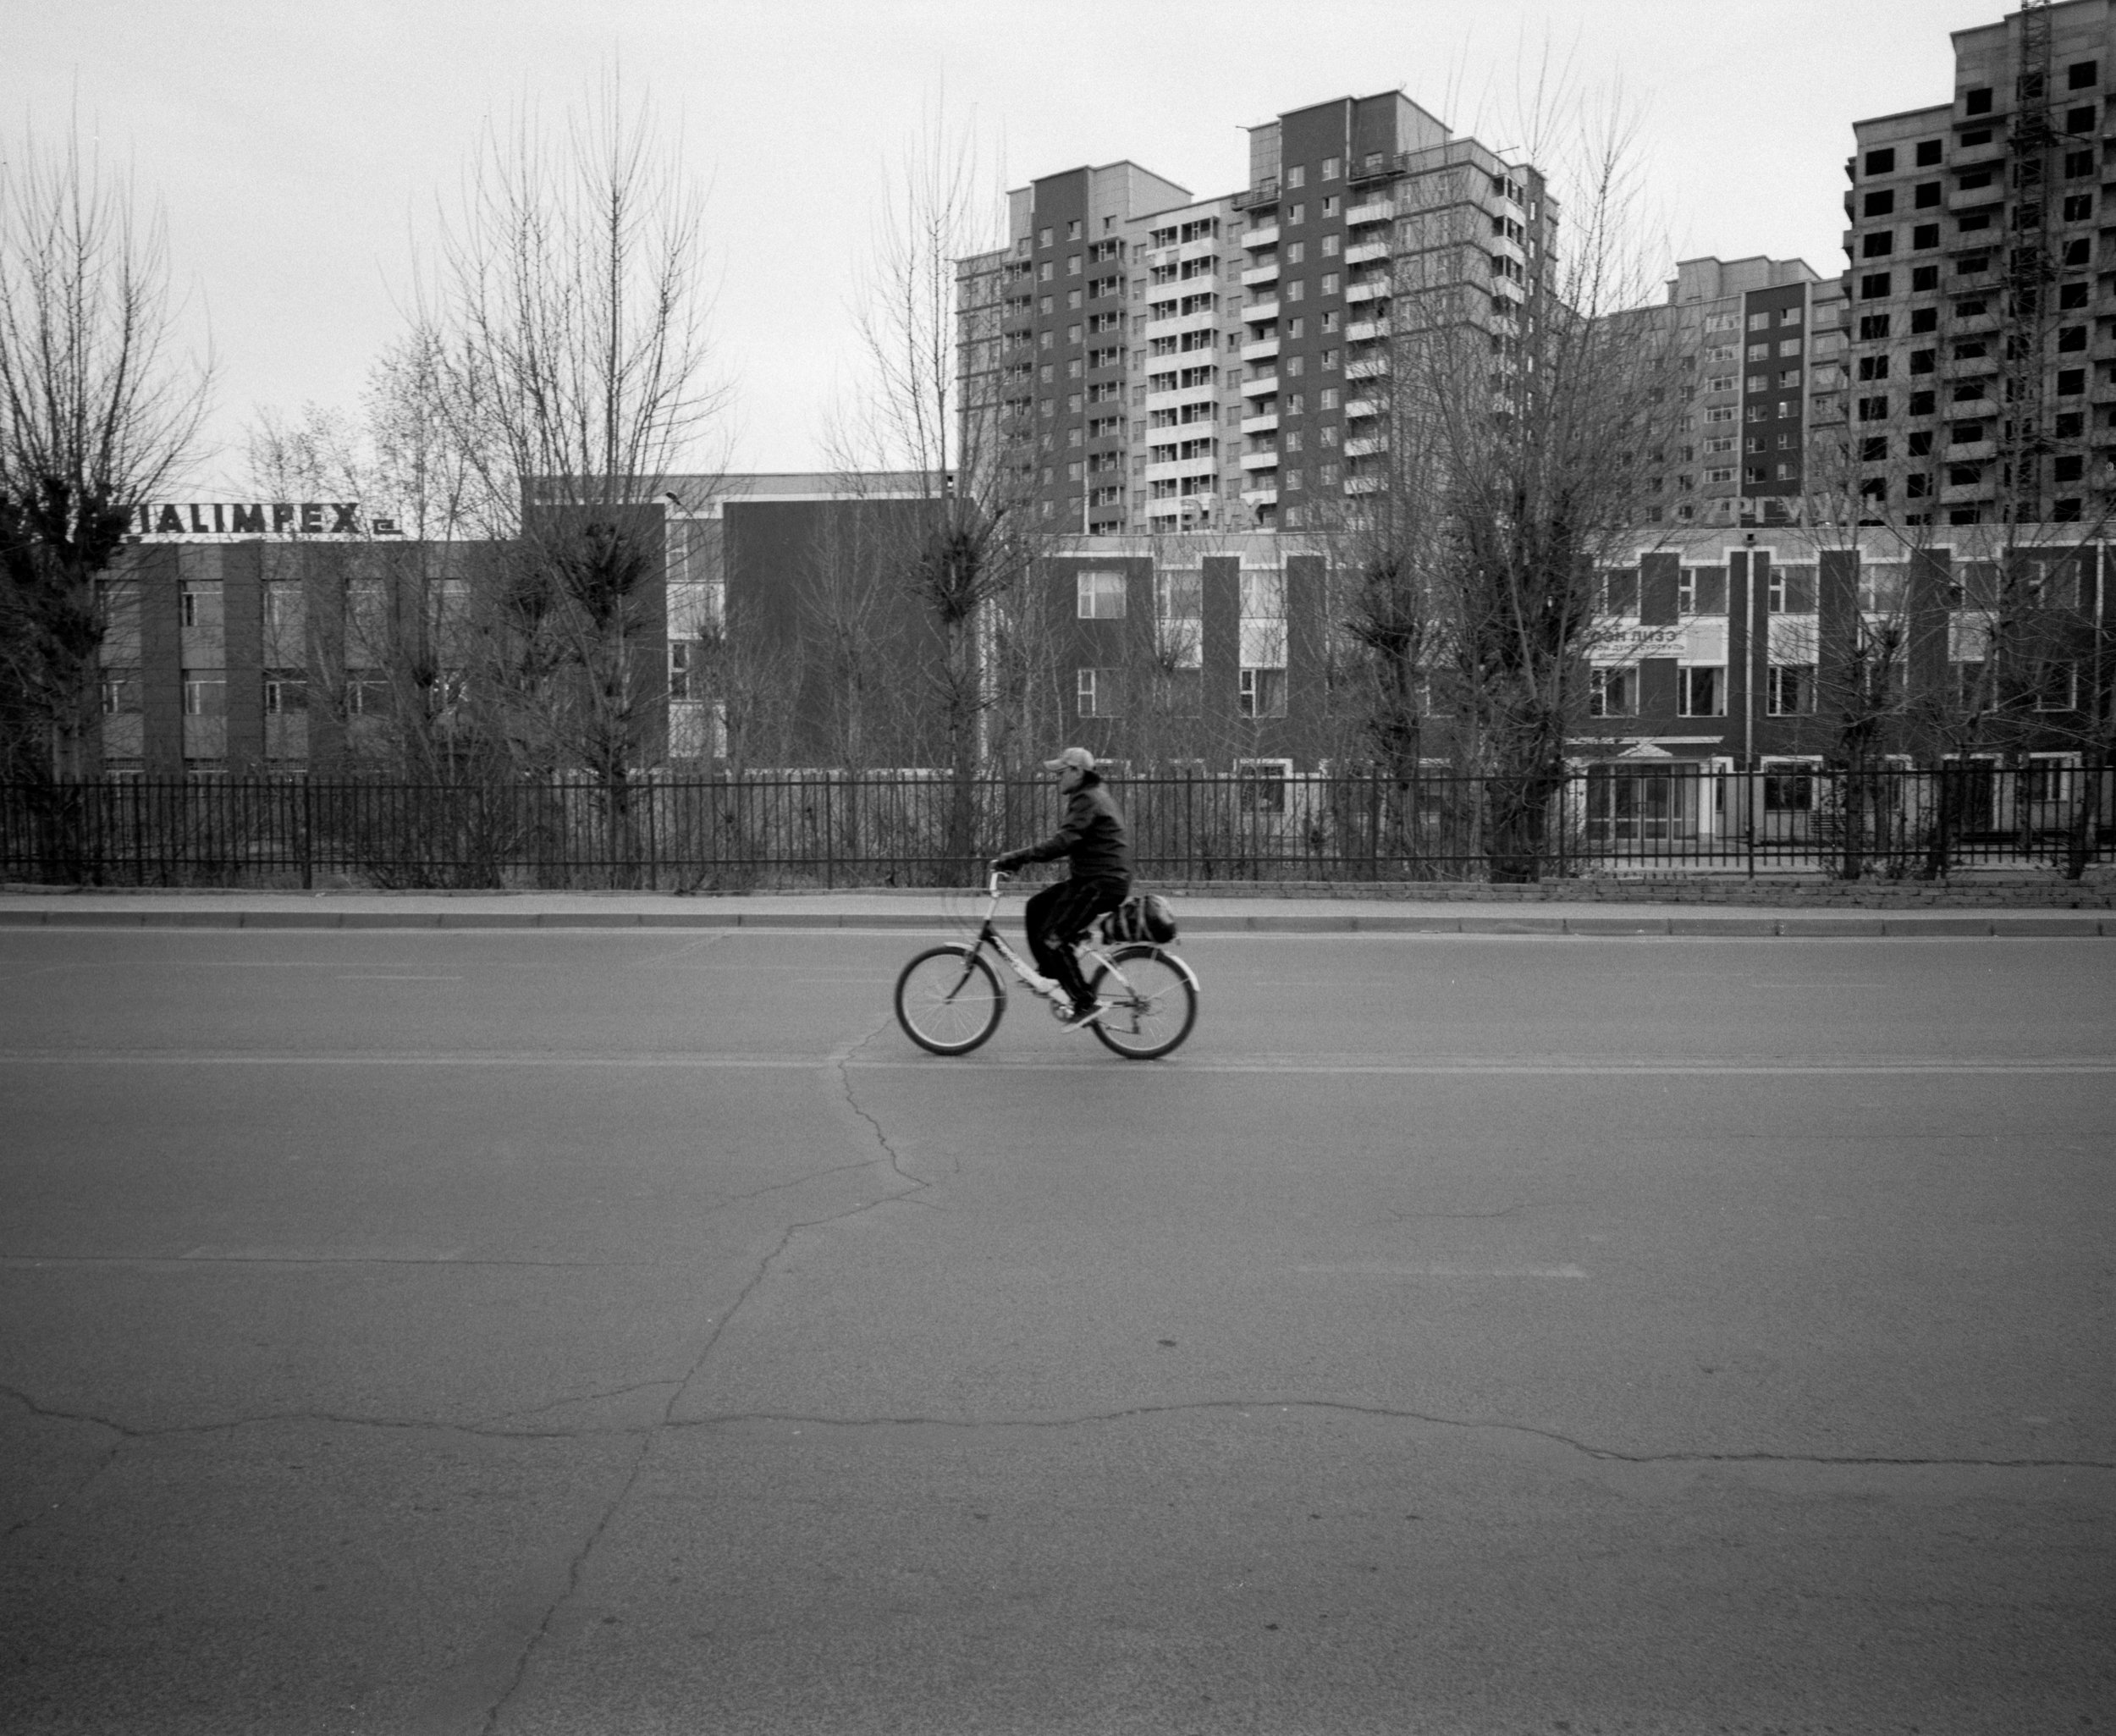 Biker Fuji GF670w | Ilford HP5 at 1600